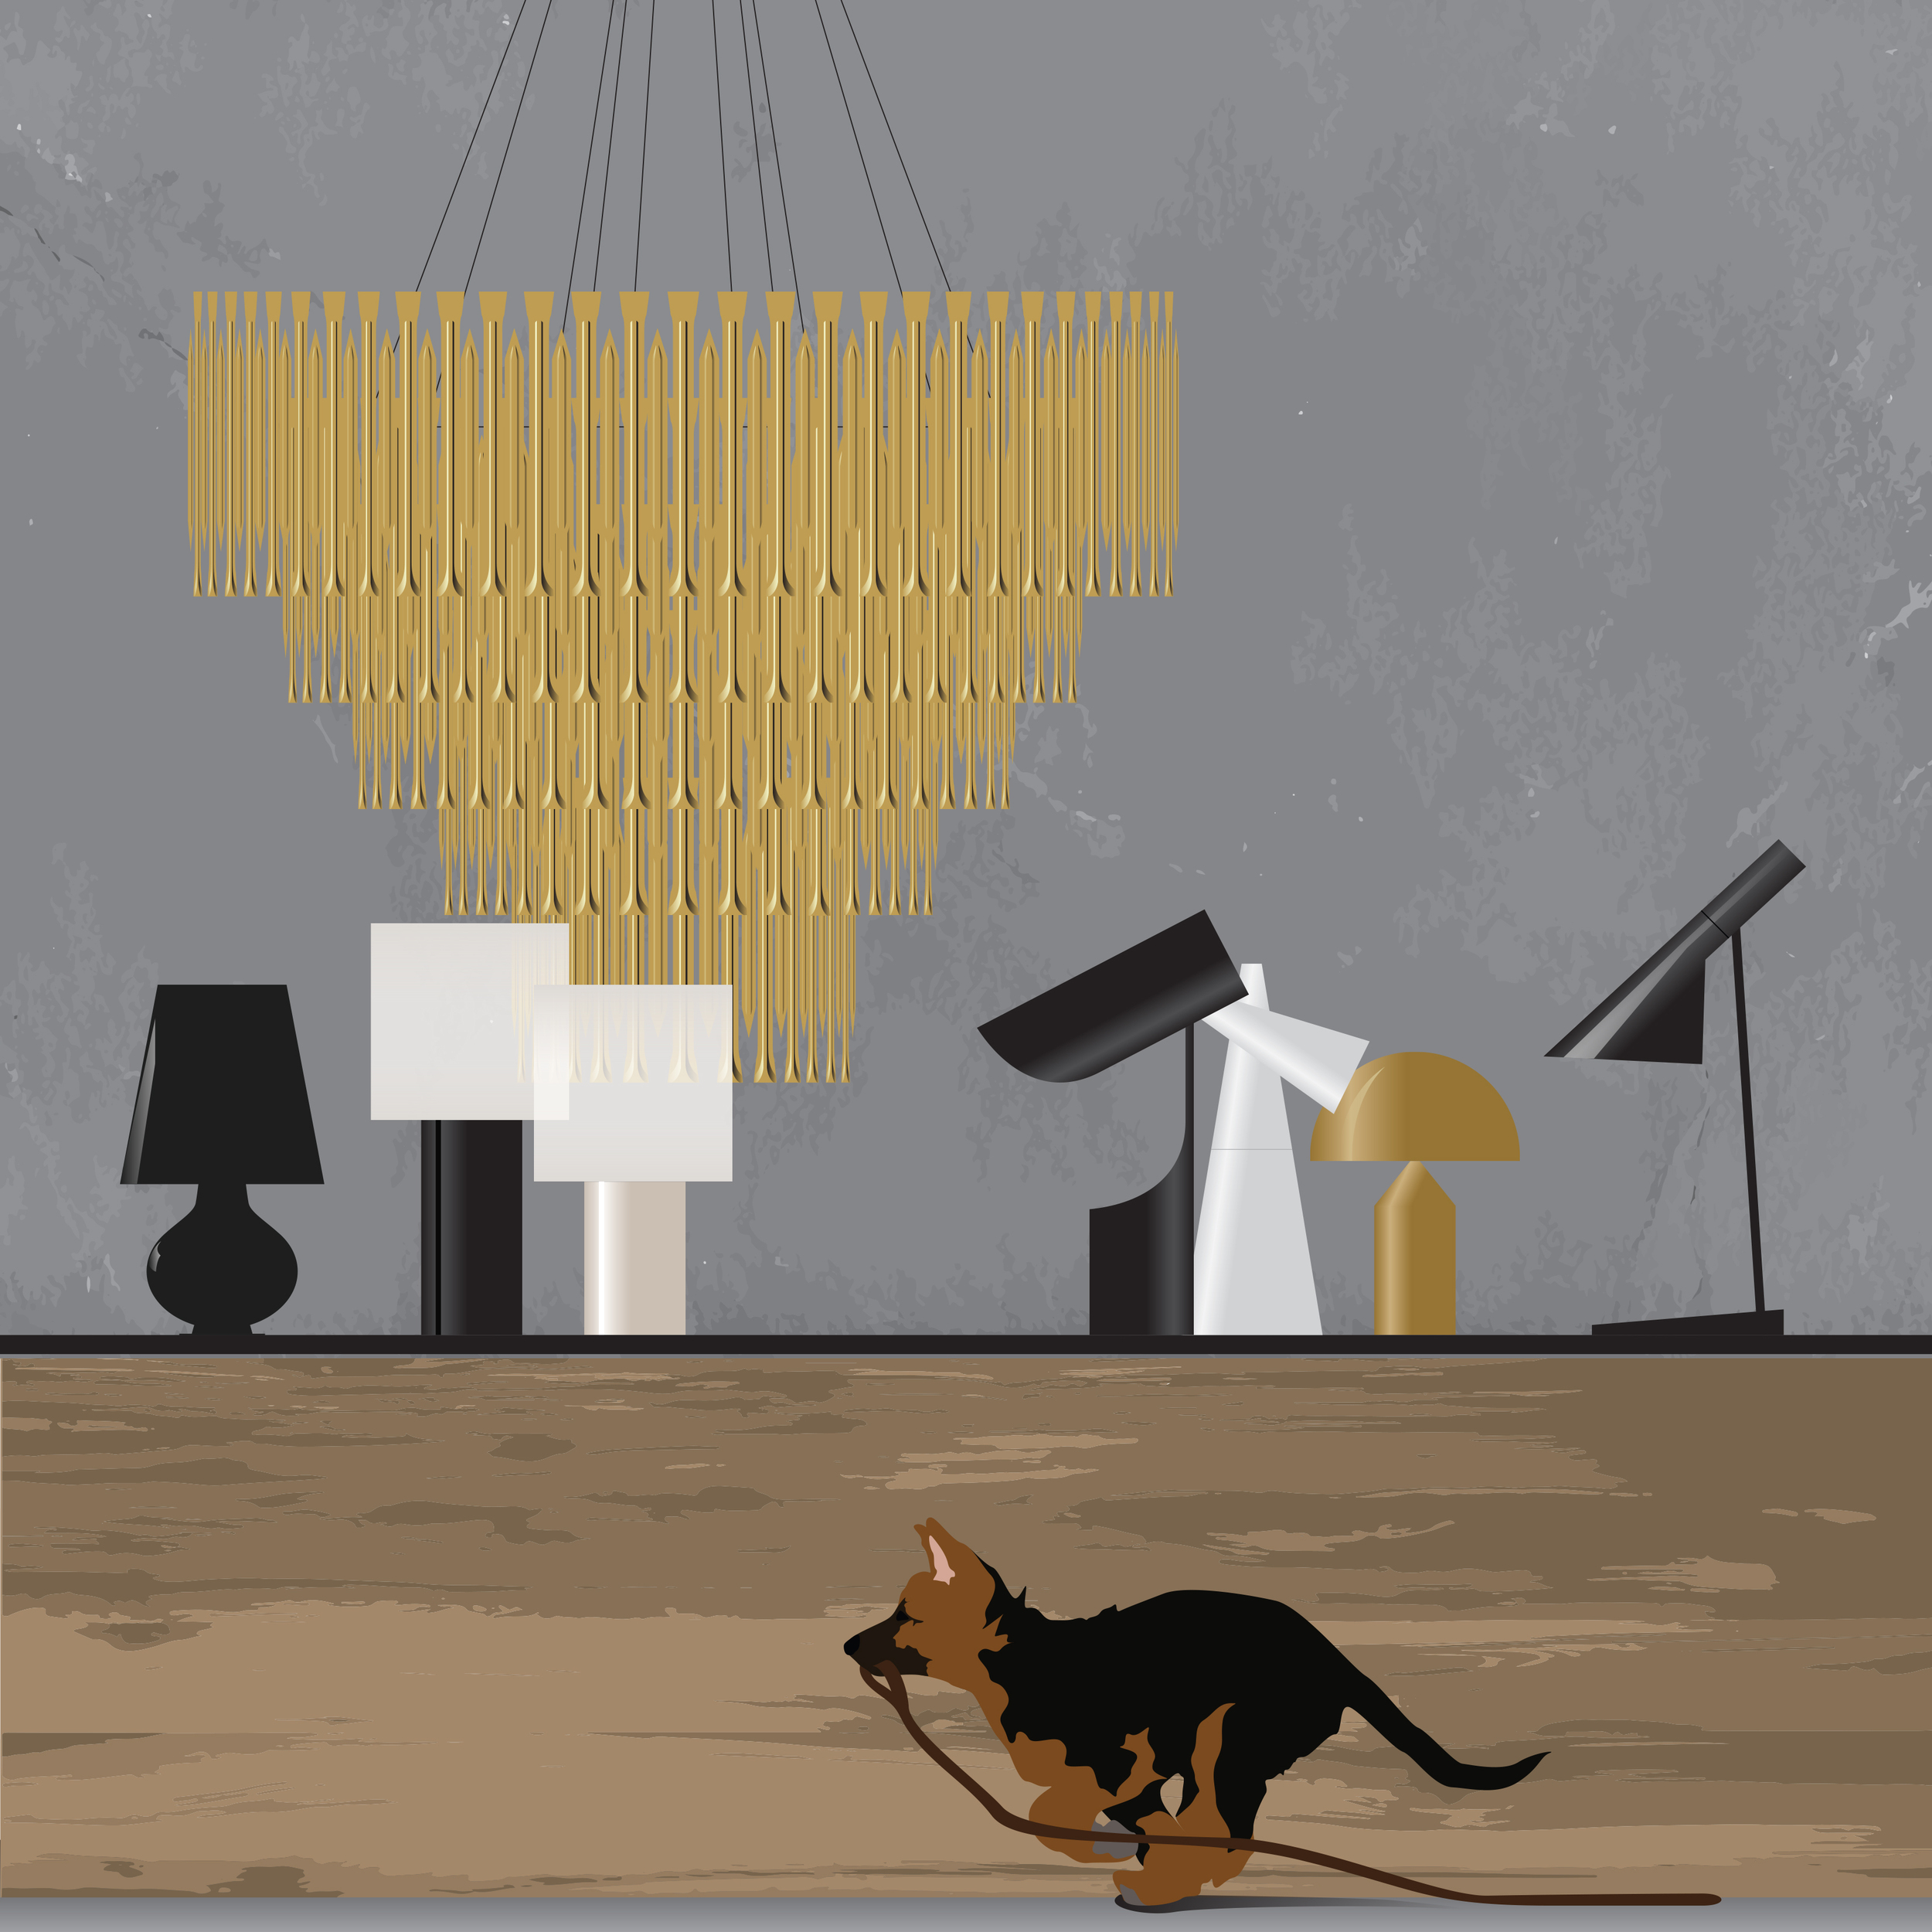 Left to right: Fontana Total Black Table Lamp by FontanaArte, Soho Table Lamp by Venini, Matheny Suspension by Delightfull, 353 Table Lamp by Le Klint, Cornet Table Lamp by Estiluz, Atollo Table Lamp by Oluce Srl, AJ Table Lamp by Louis Poulsen